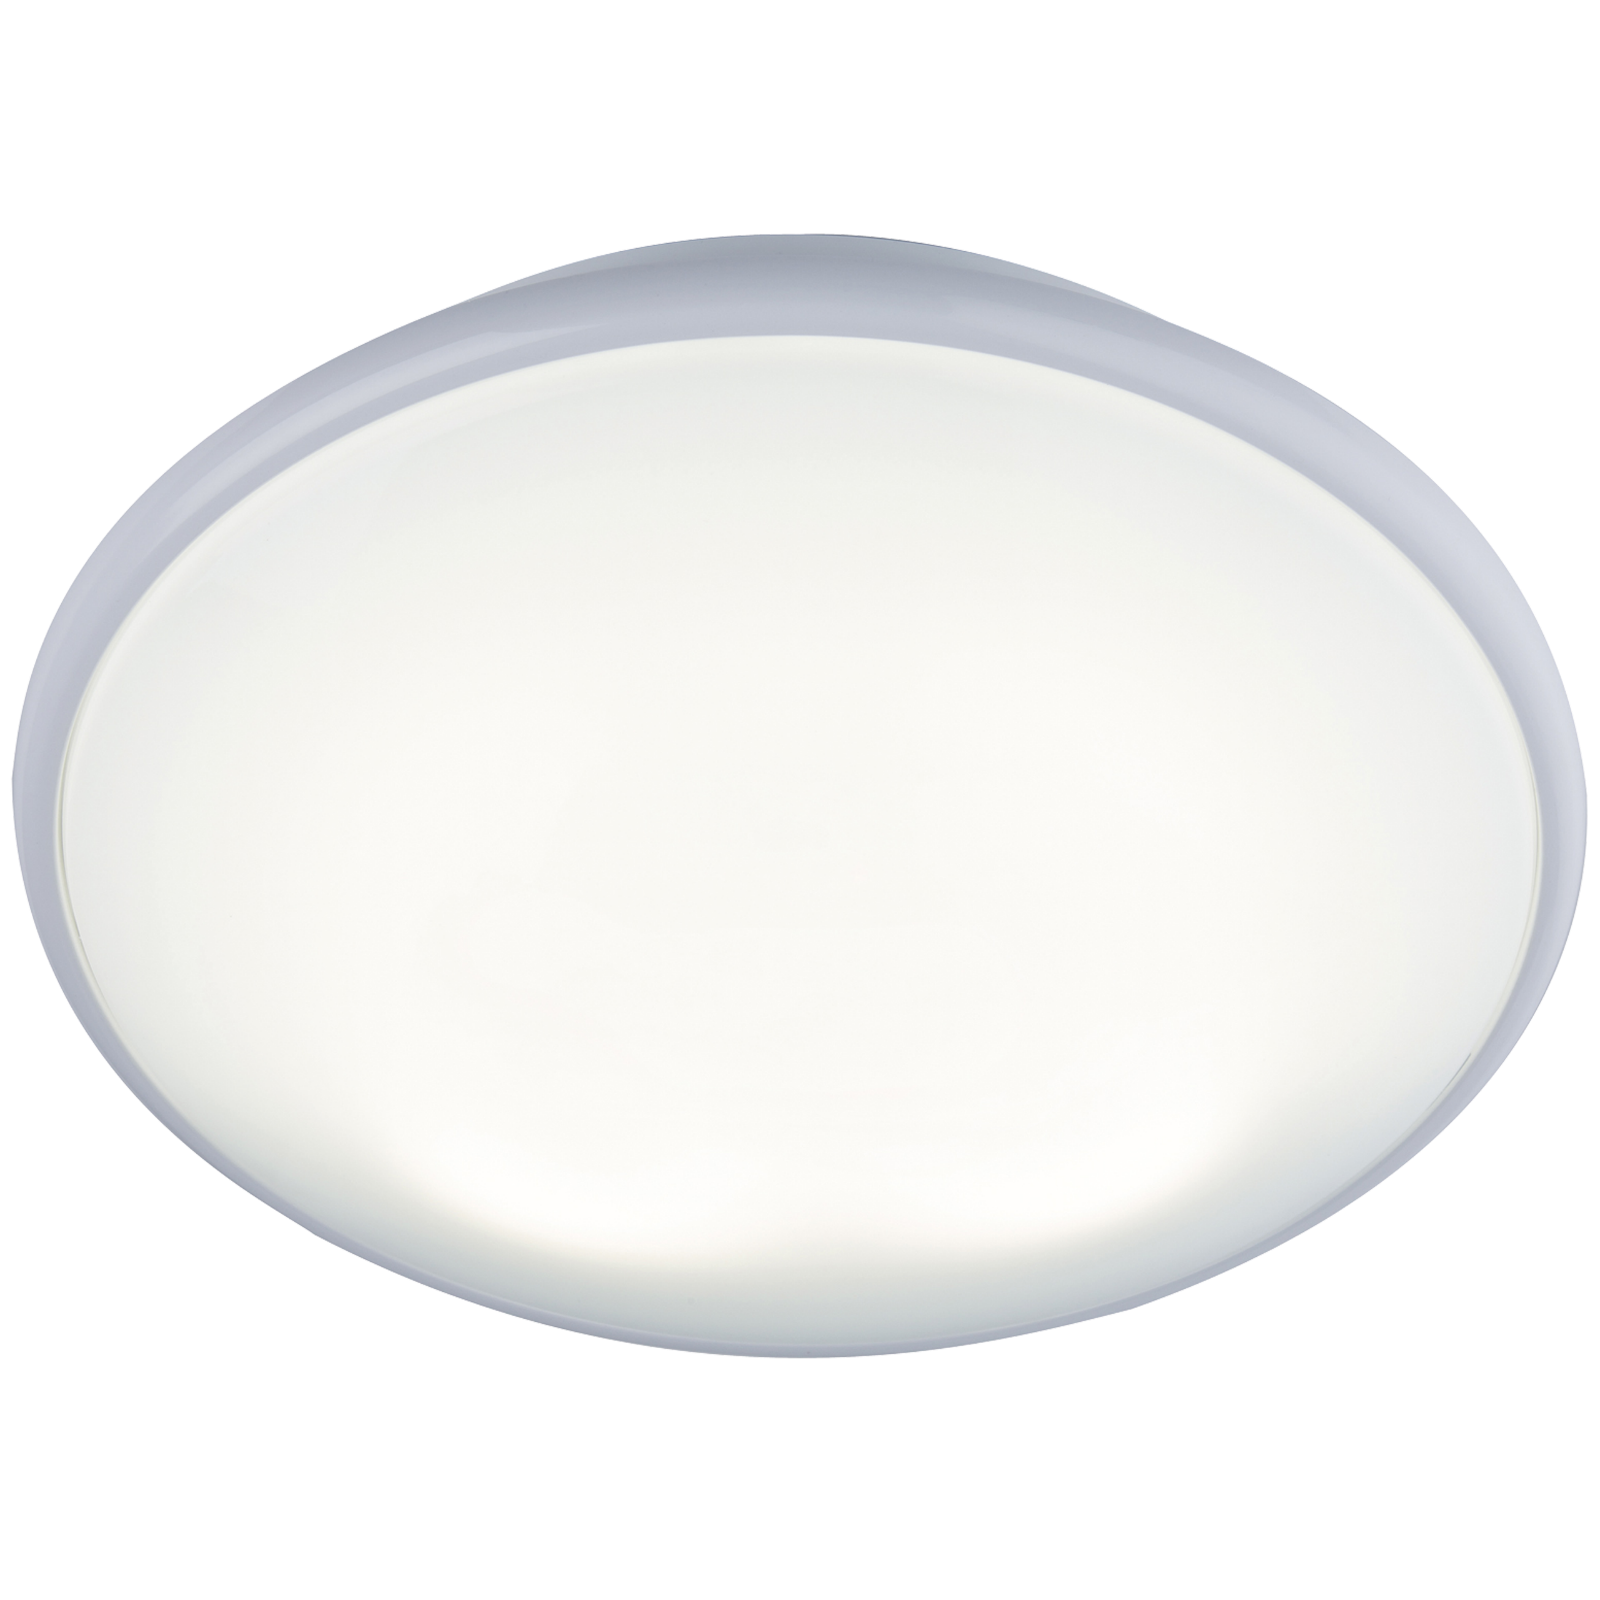 IP20 28W 2D HF Bulkhead with Opal Diffuser and White Base